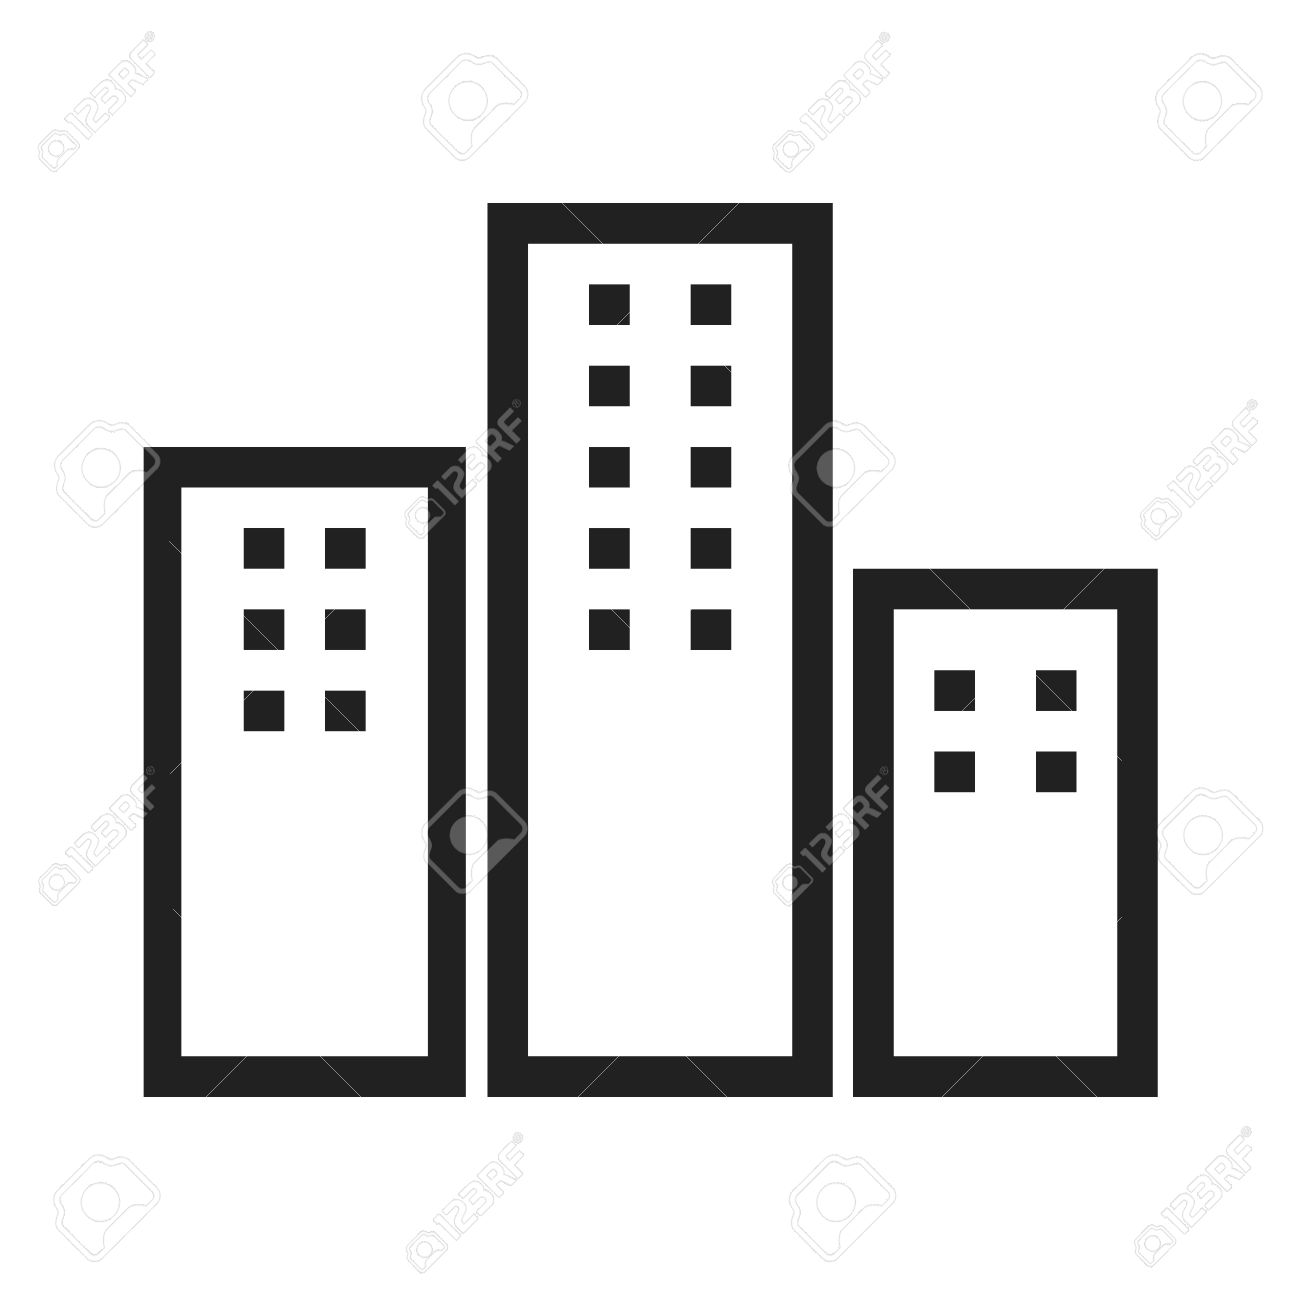 black and white apartment building clip art. apartments clipart  building residential icon vector image can also be used for real estate Apartments Clipart Apartment Clip Art 1